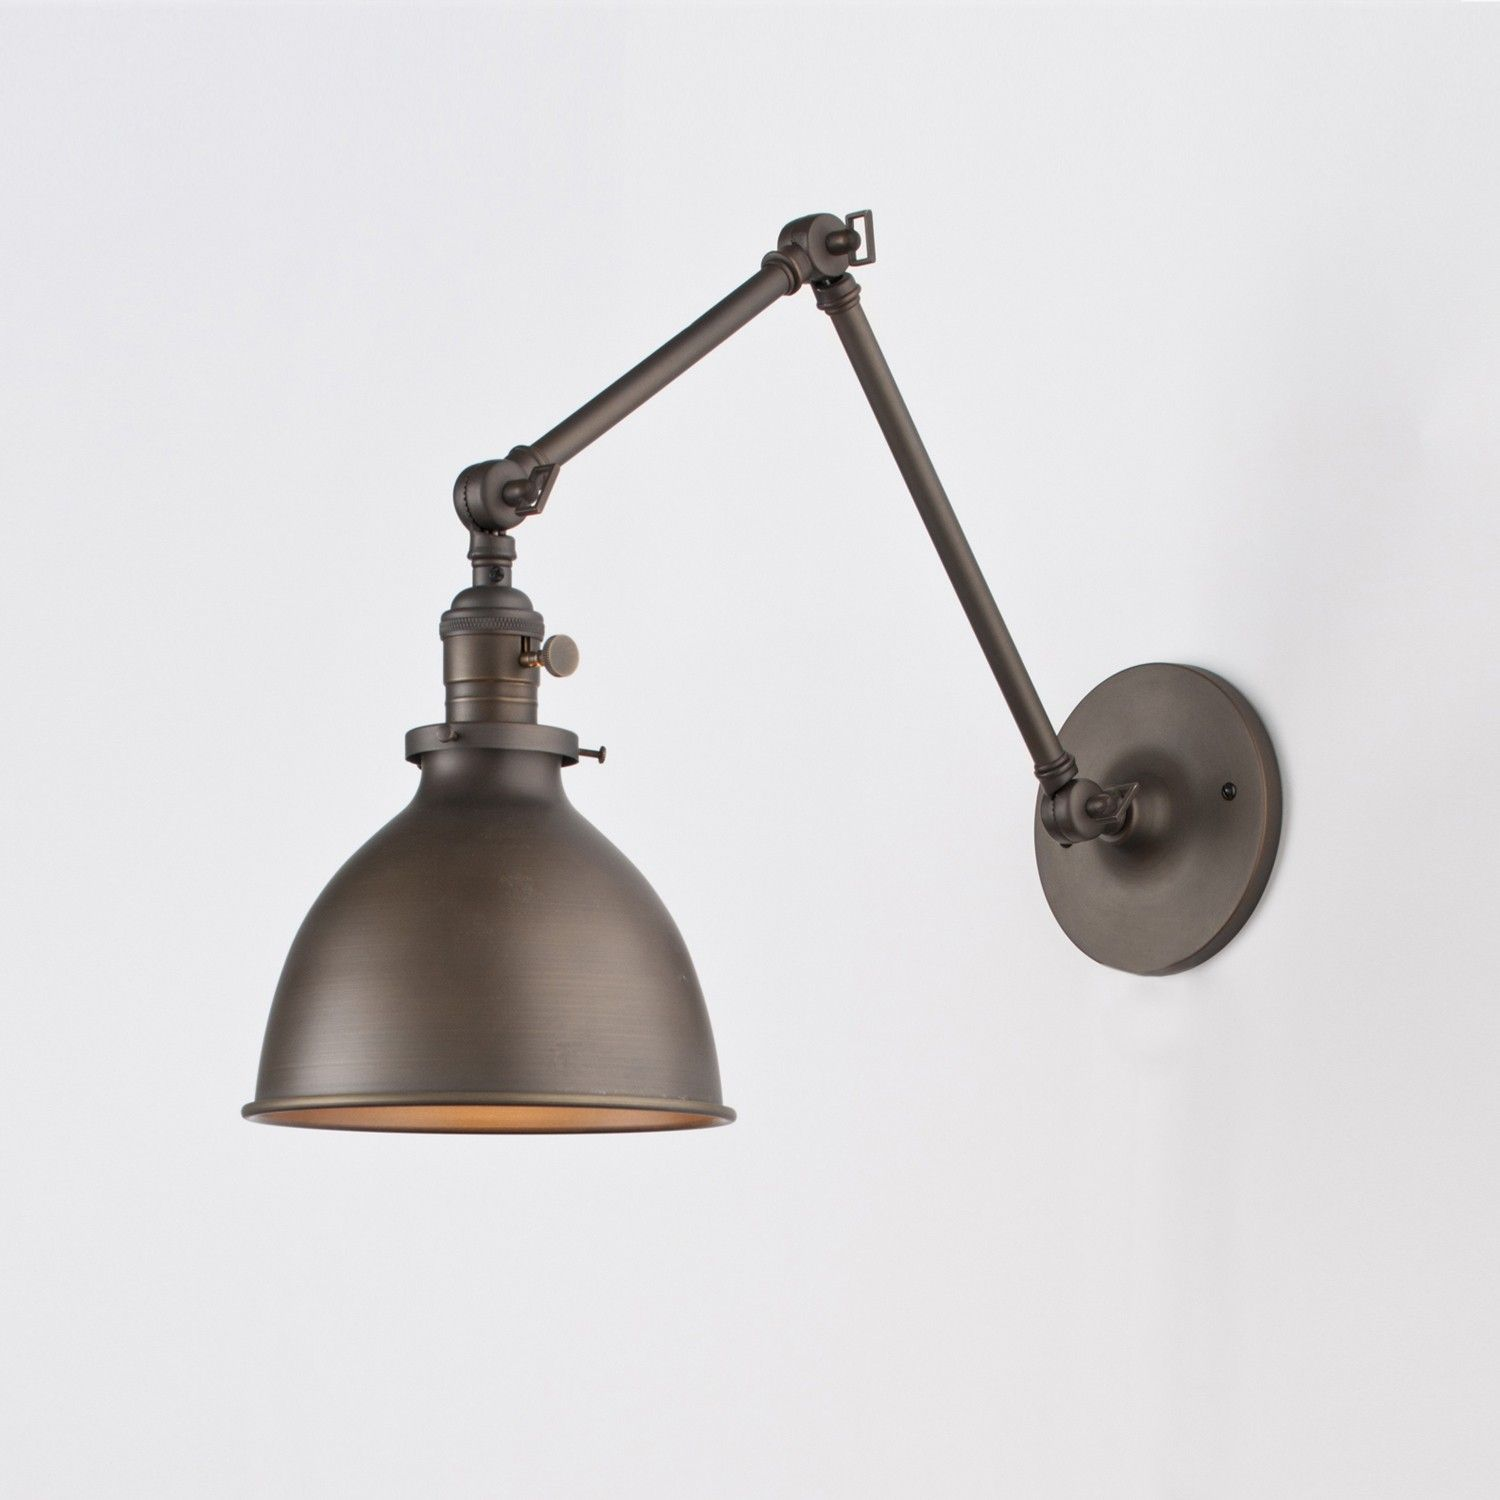 Wall Sconce No Shade : Factory Metal Light Shade Factory Shade No. 3 Schoolhouse Electric & Supply Co. Homey not ...